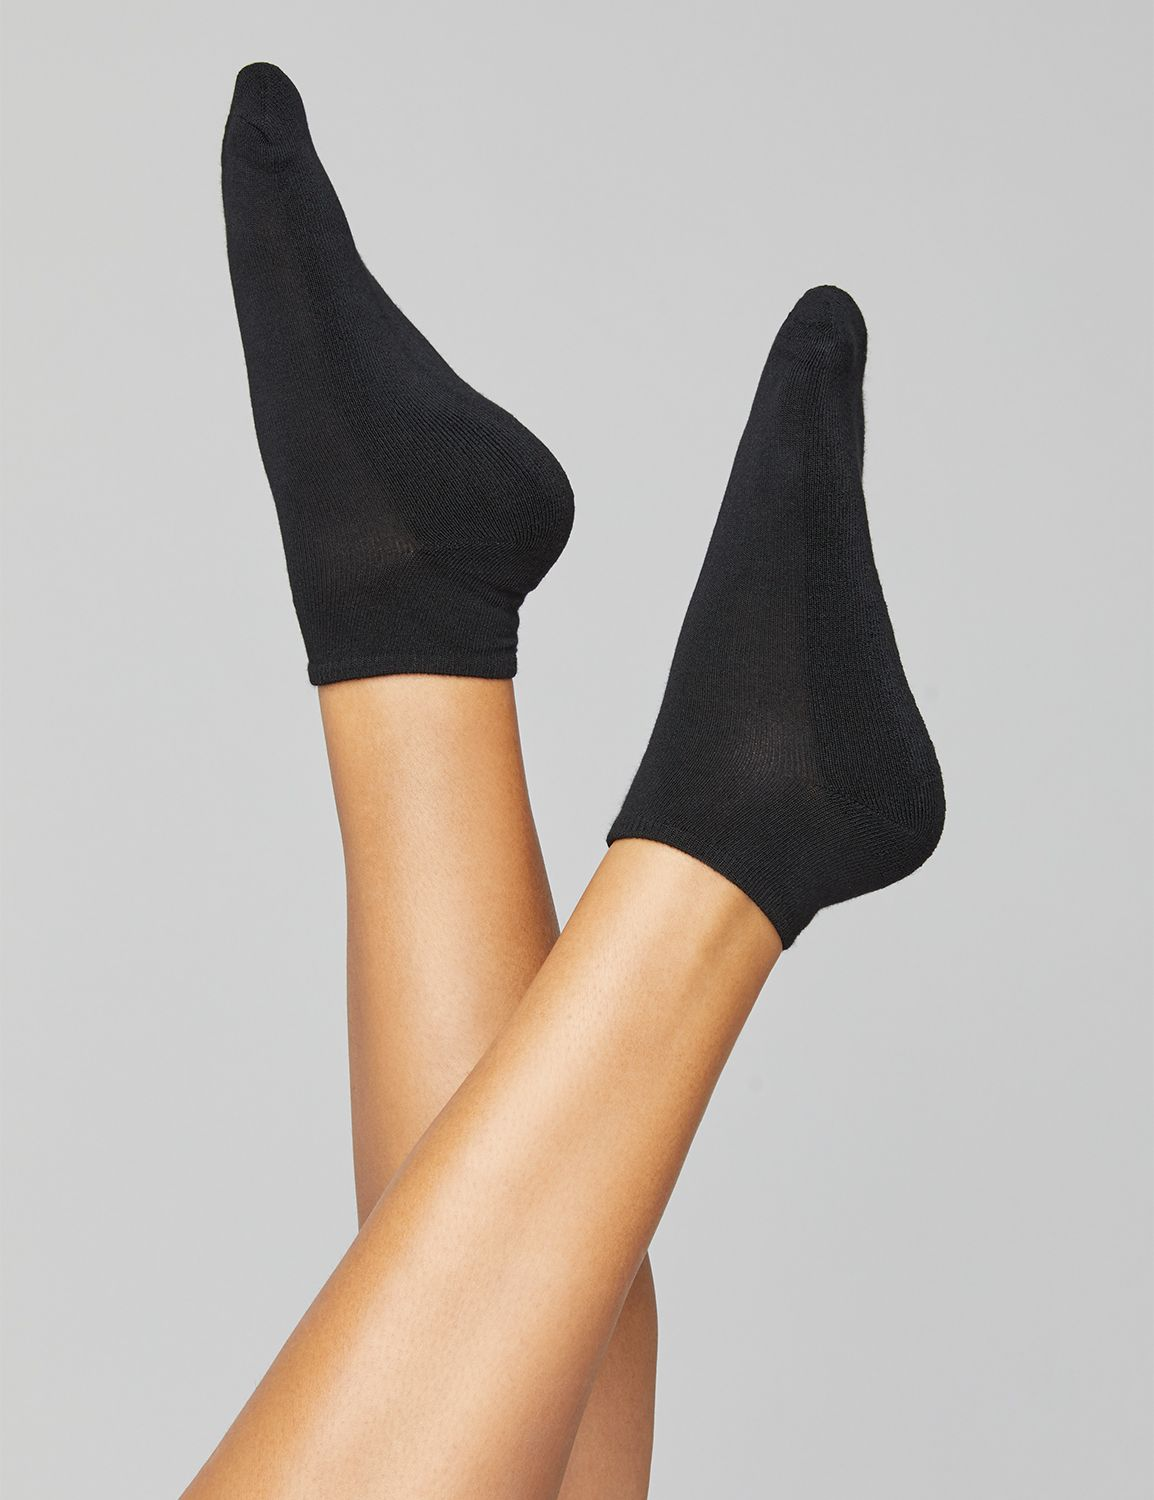 Lane Bryant Womens Cushioned Ankle Sock Duo ONESZ Black